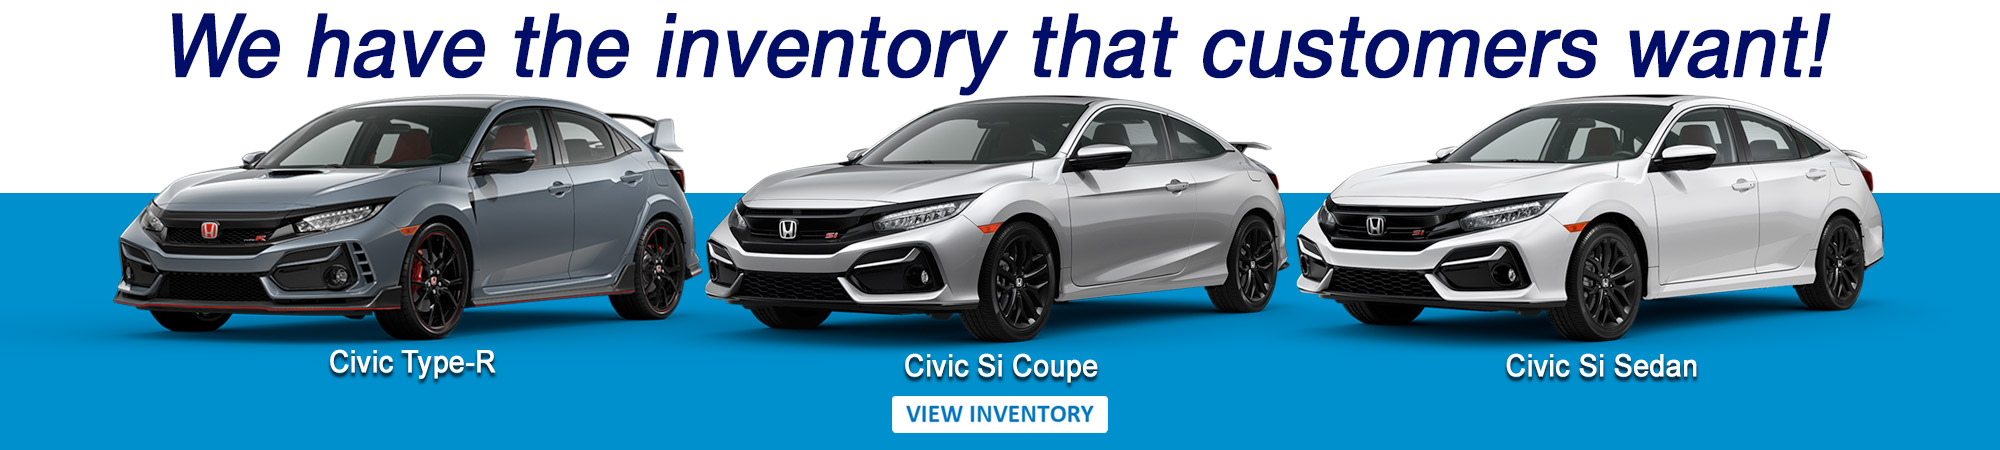 Civic Type-R and Civic Si inventory